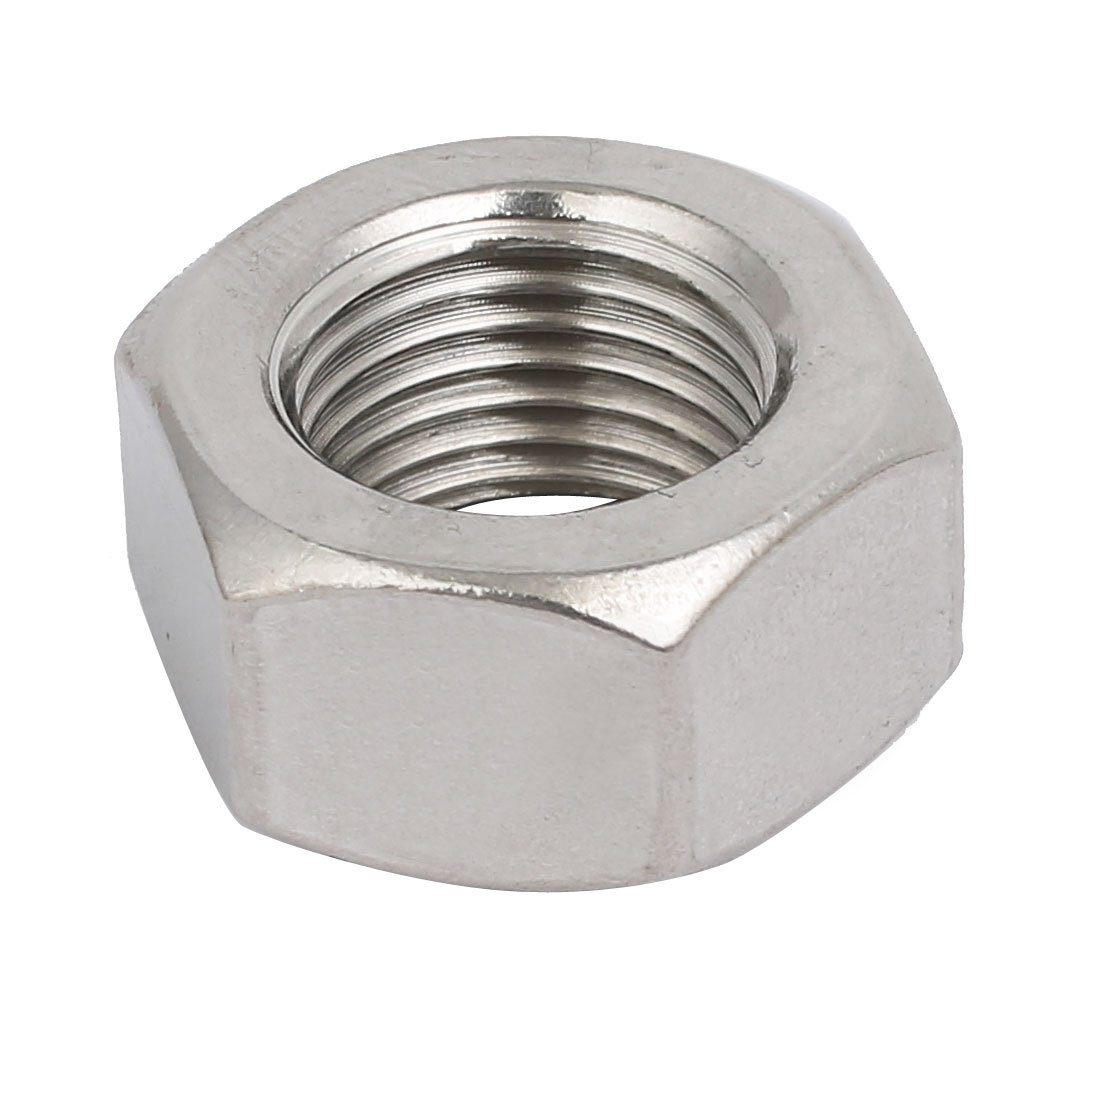 uxcell2pcs M16 x 1.5mm Pitch Metric Fine Thread 304 Stainless Steel Hex Nuts